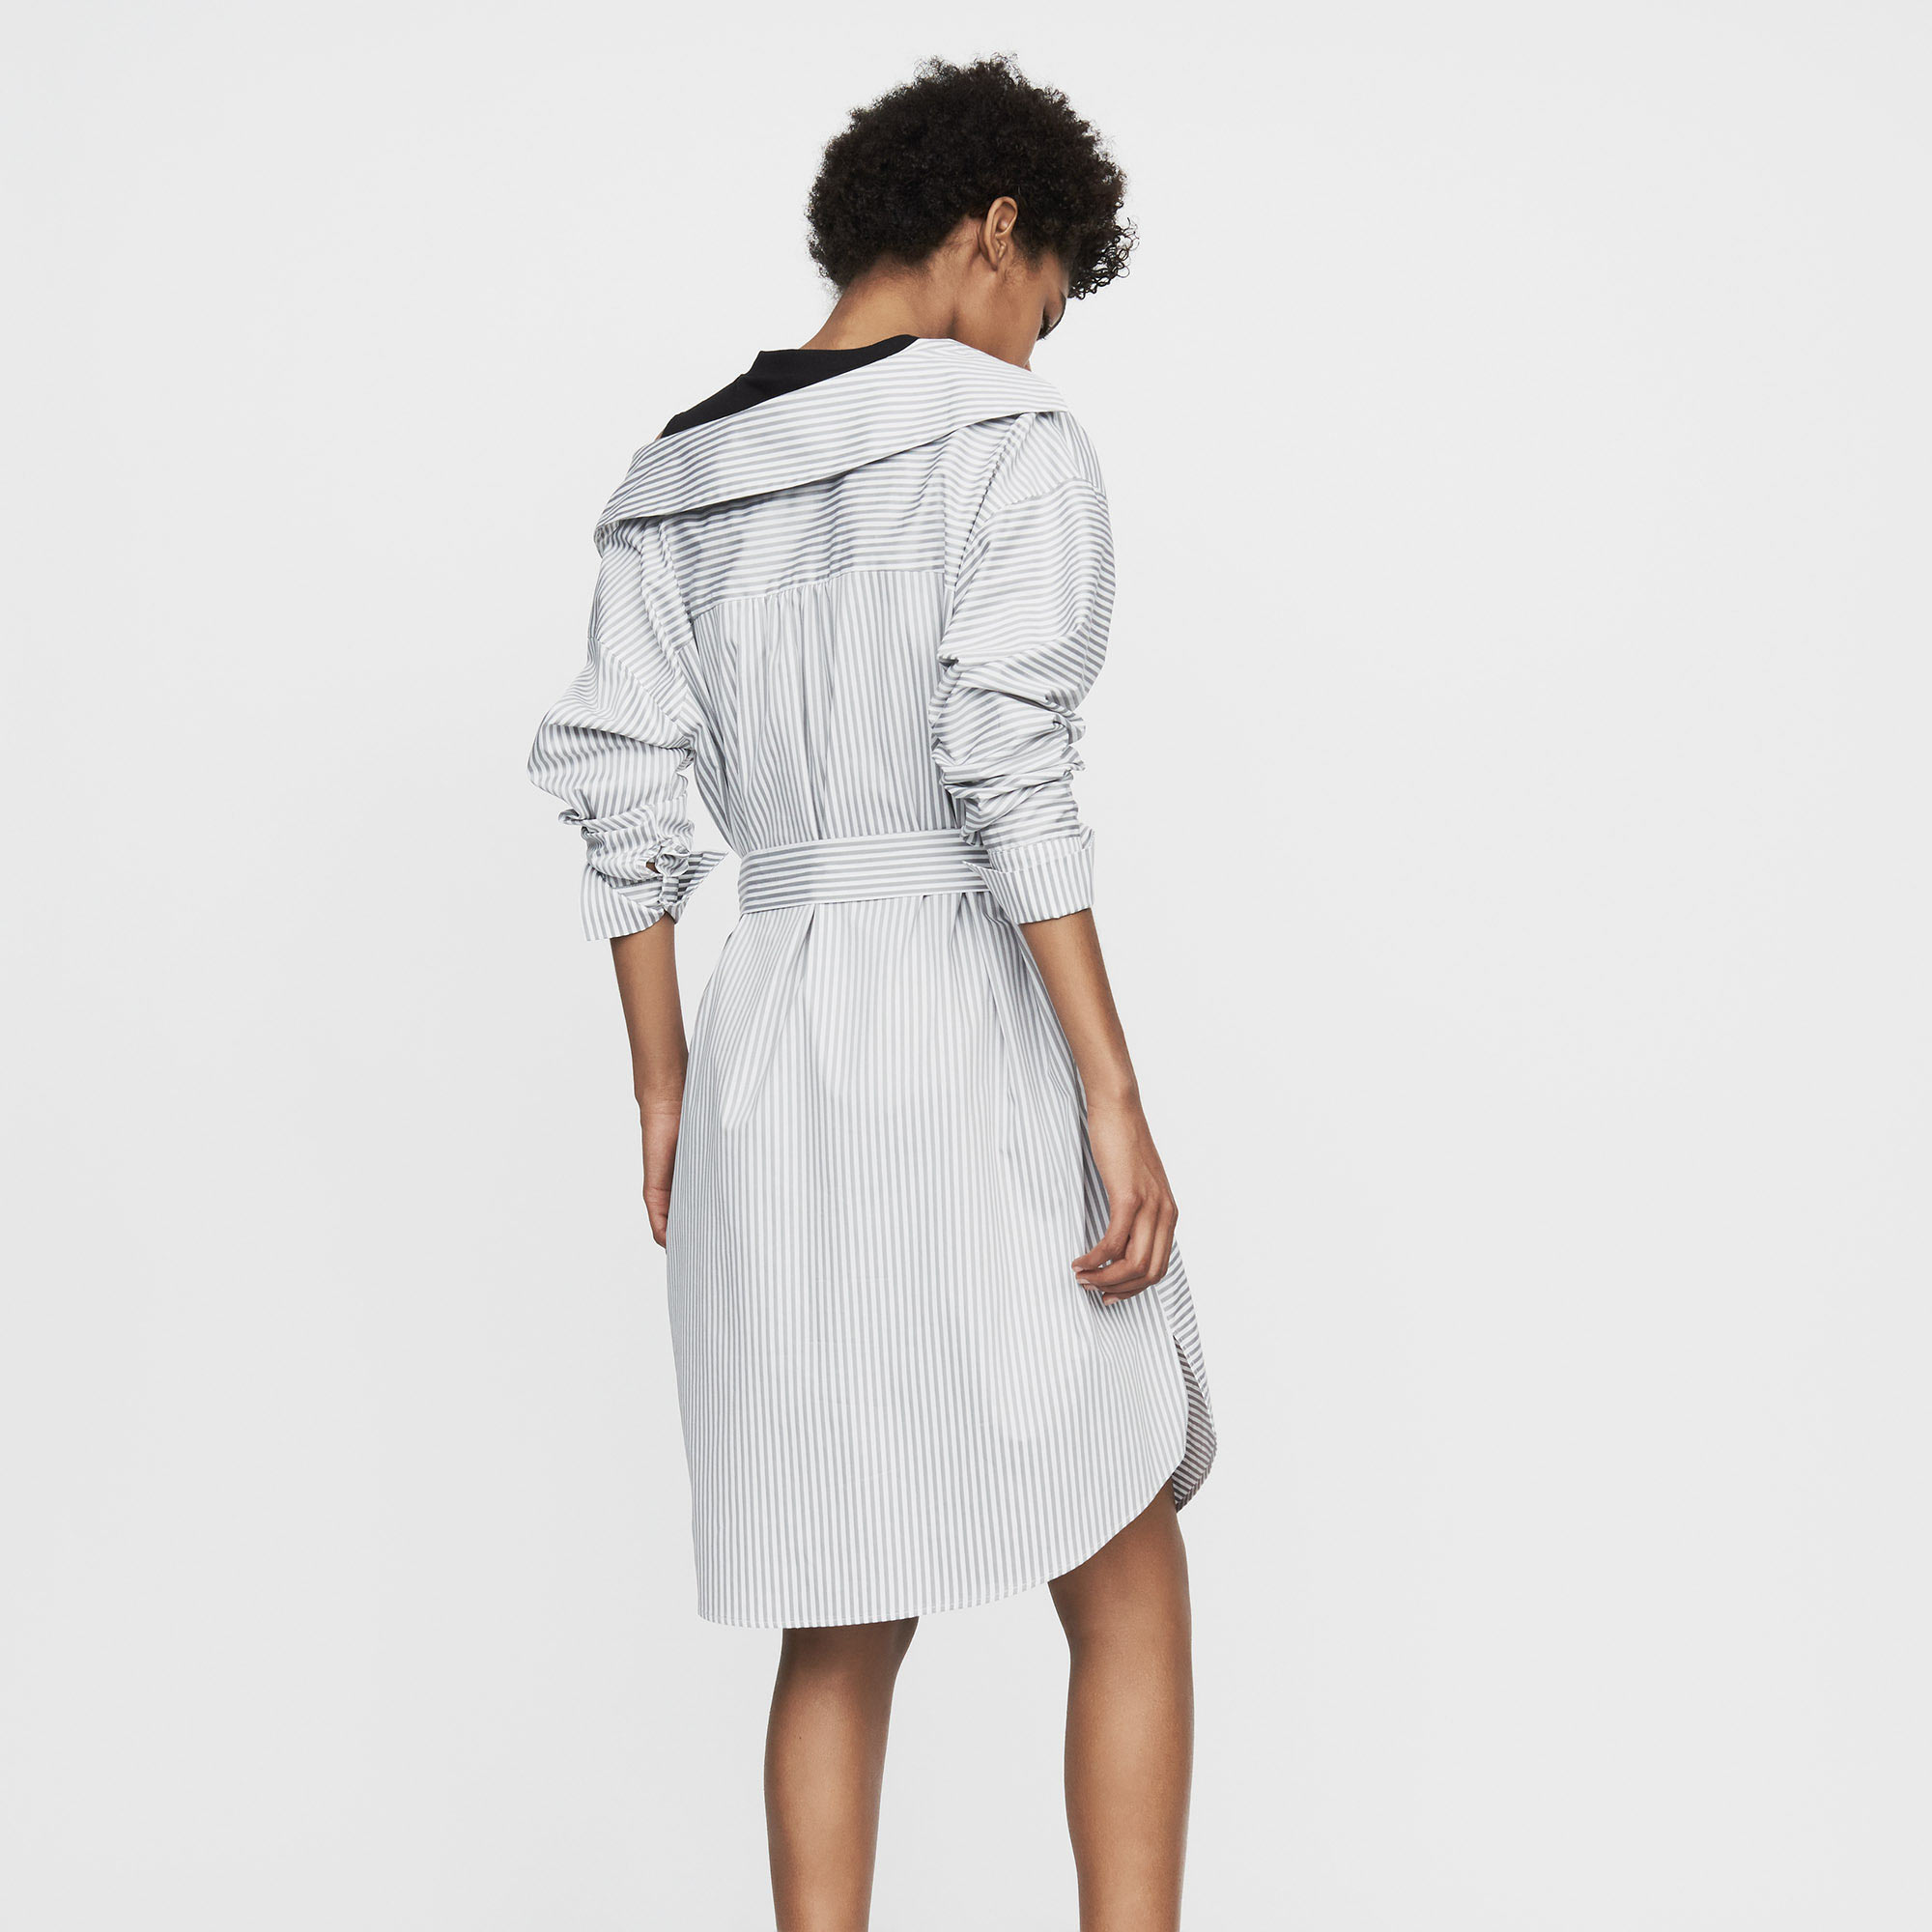 Destructured striped shirt dress - Stripe